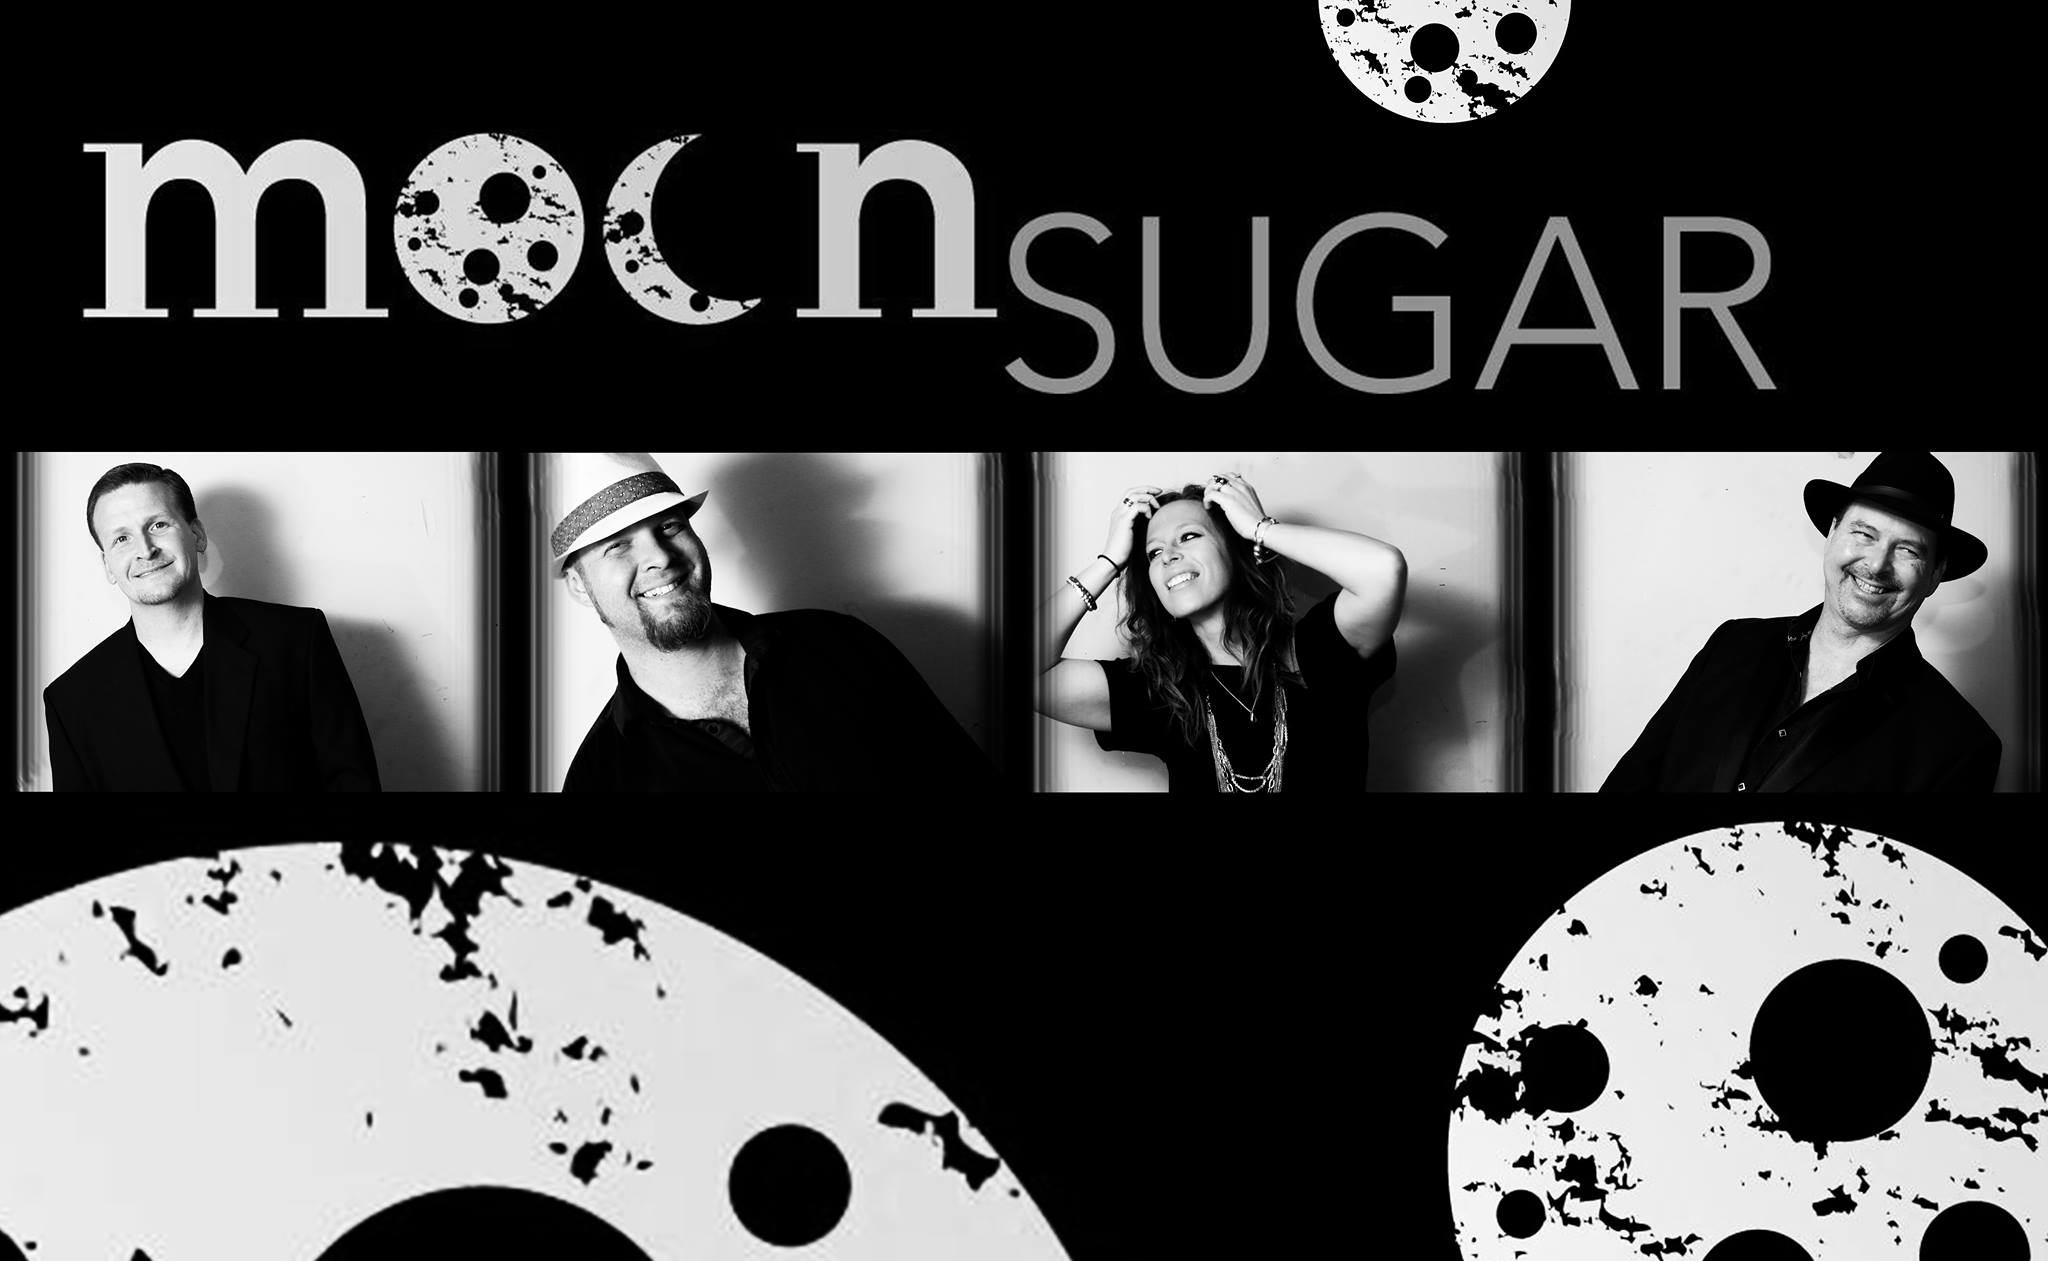 Live Music featuring Moon Sugar at The Depot in Norfolk, Nebraska - 